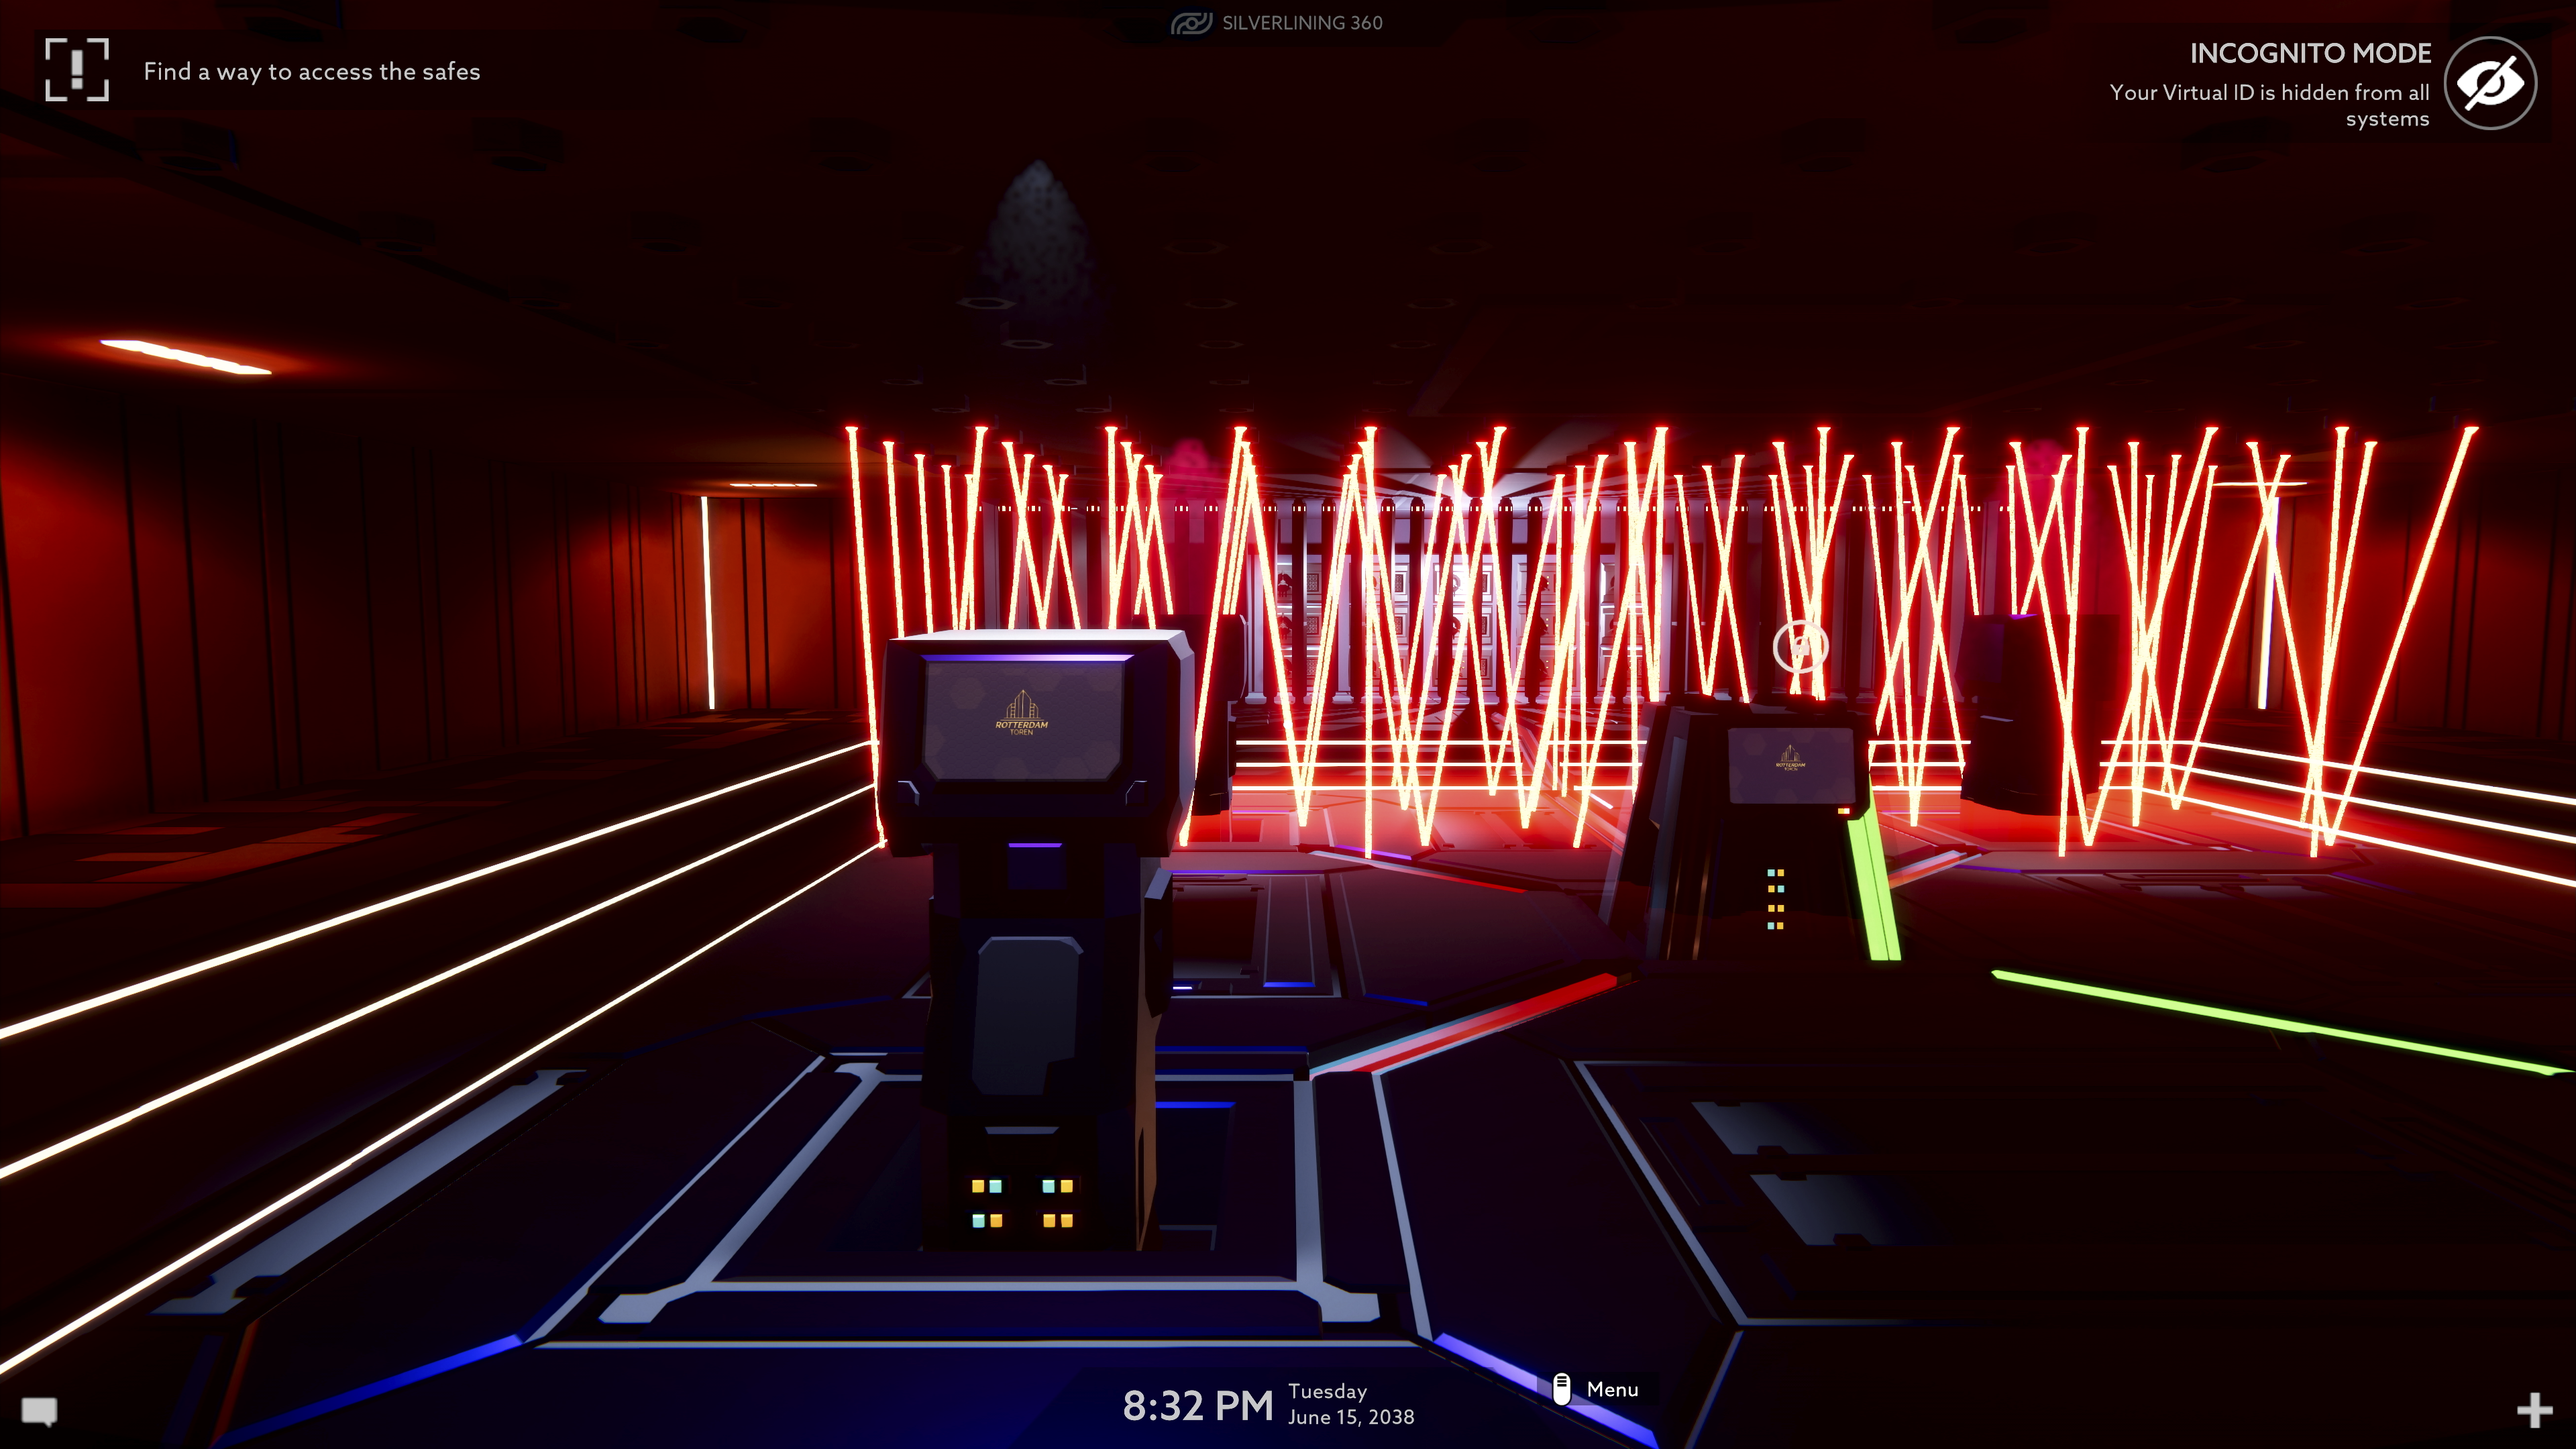 Operation Tango screenshot - Dark room with red security lasers